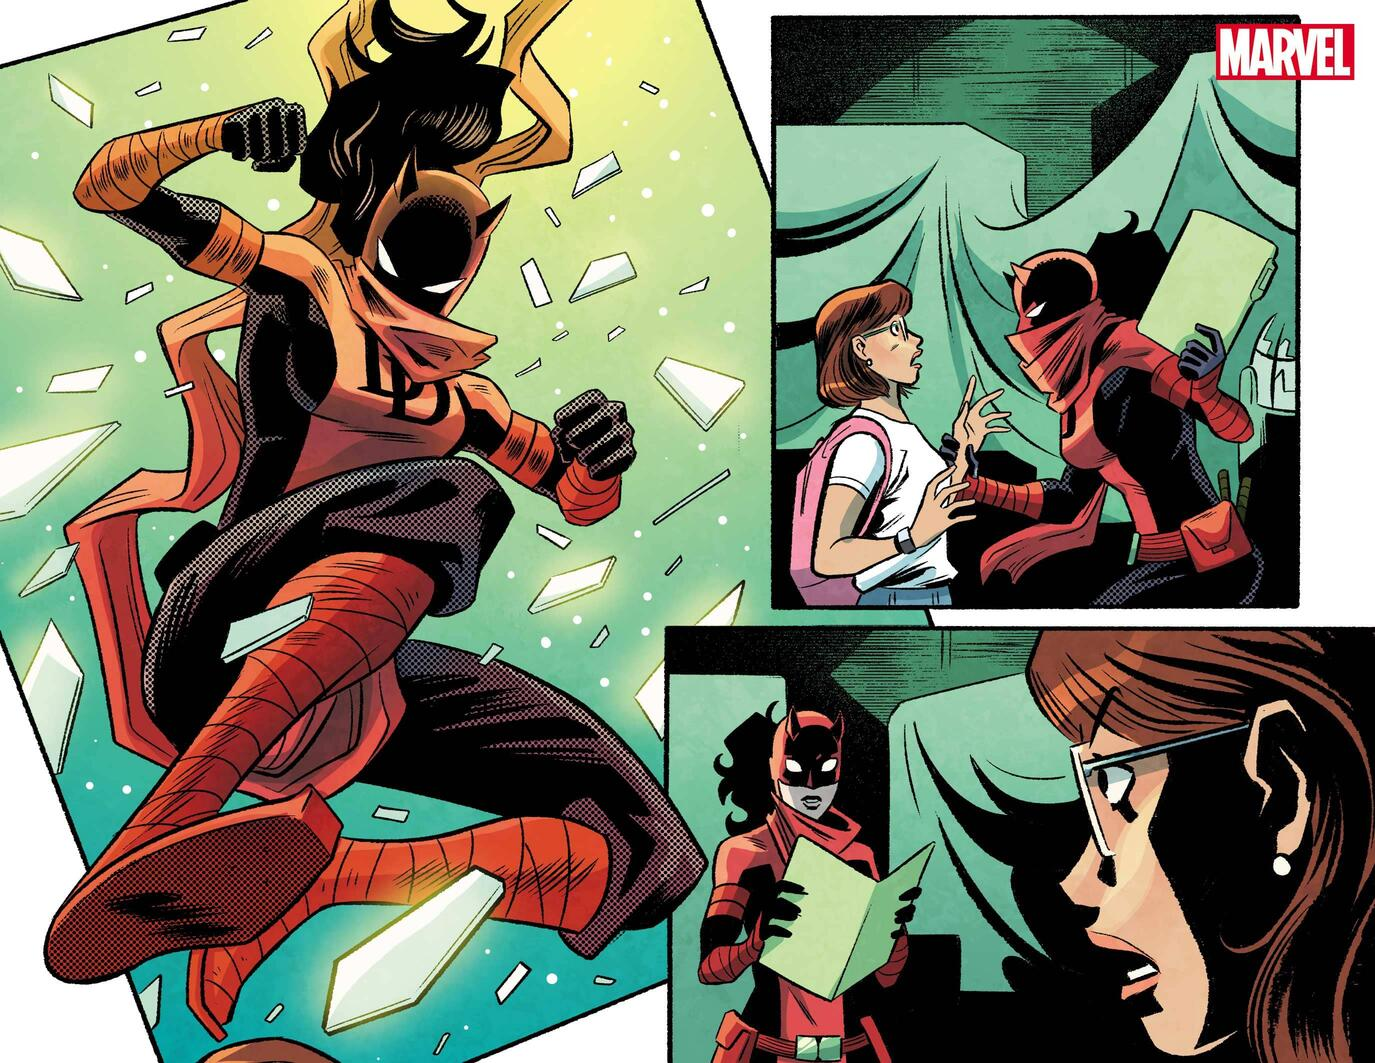 MARVEL'S VOICES: PRIDE #1 preview art by Derek Charm, colors by Brittany Peer